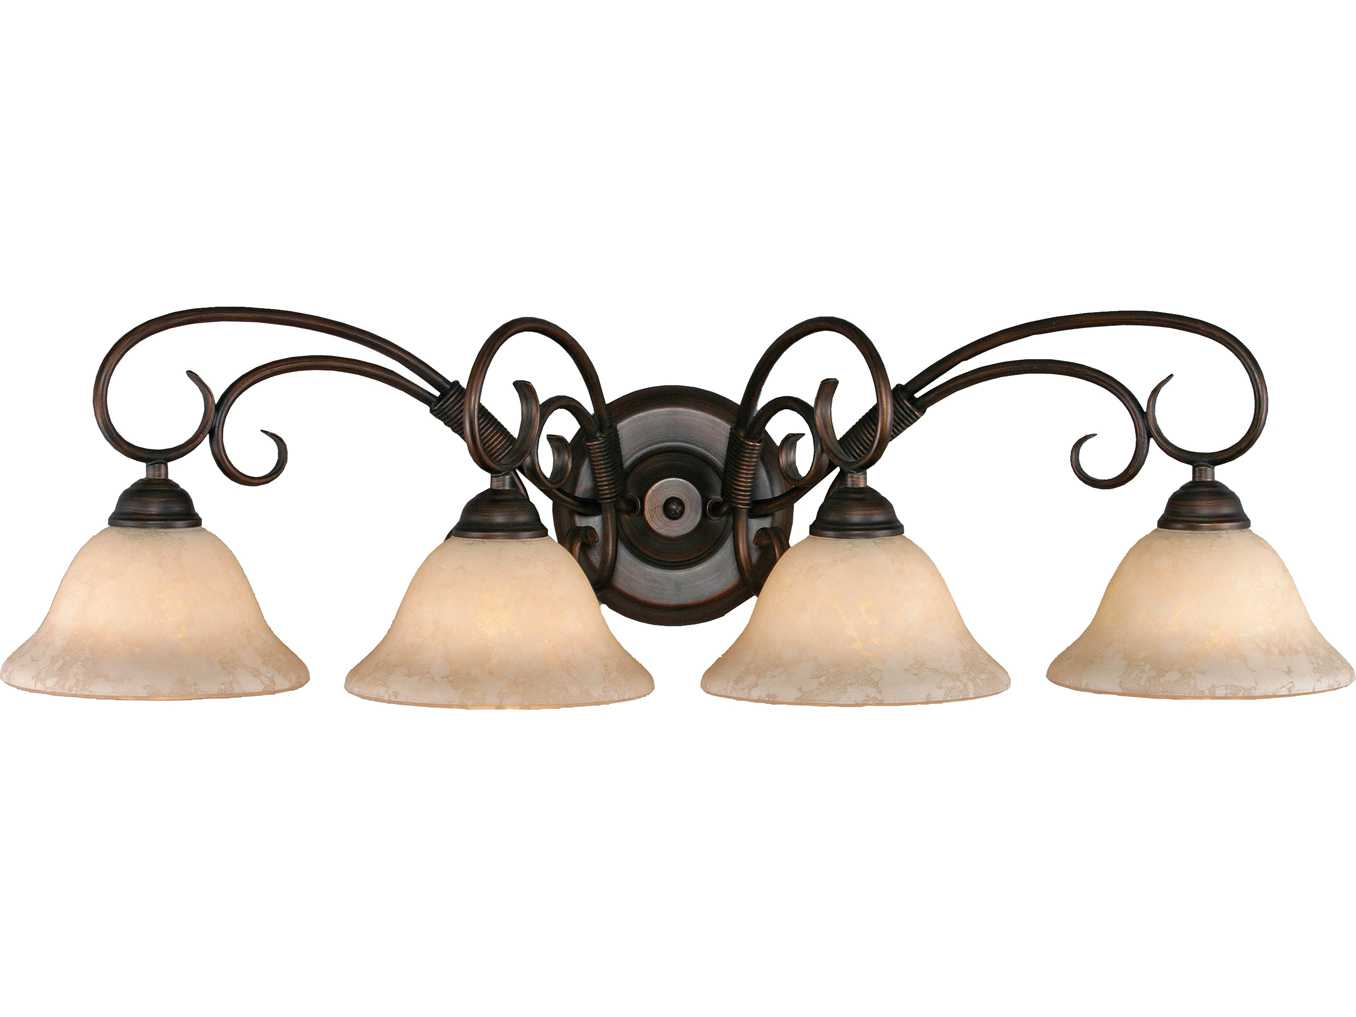 Golden Lighting Homestead Rubbed Bronze Four-Light Vanity Light with Tea Stone Glass ...